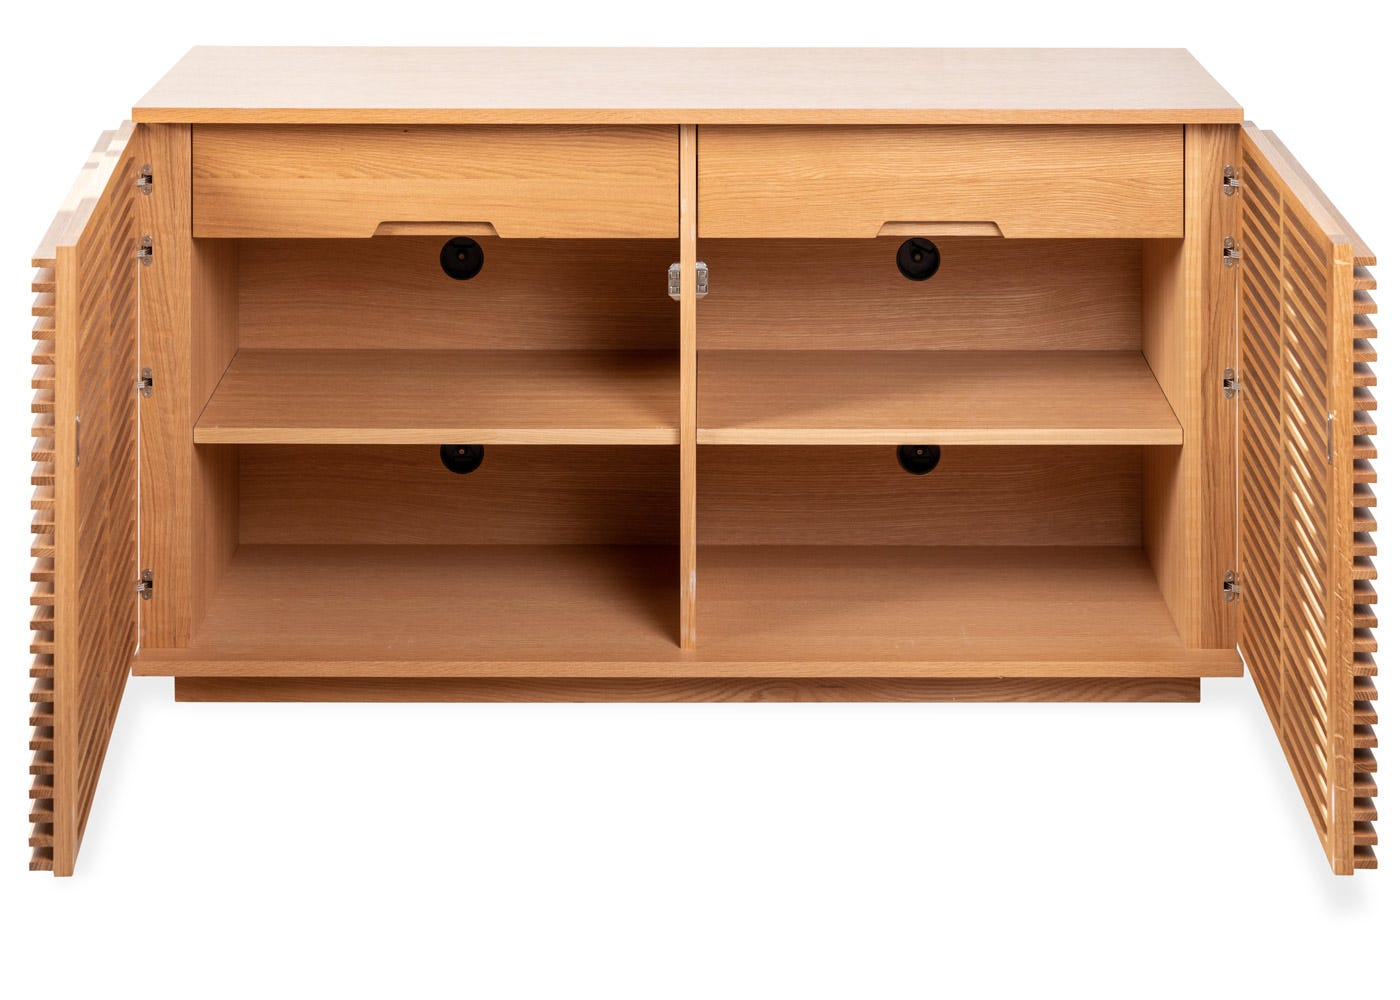 As shown: Verona small sideboard in oak - interior with cable management system holes.